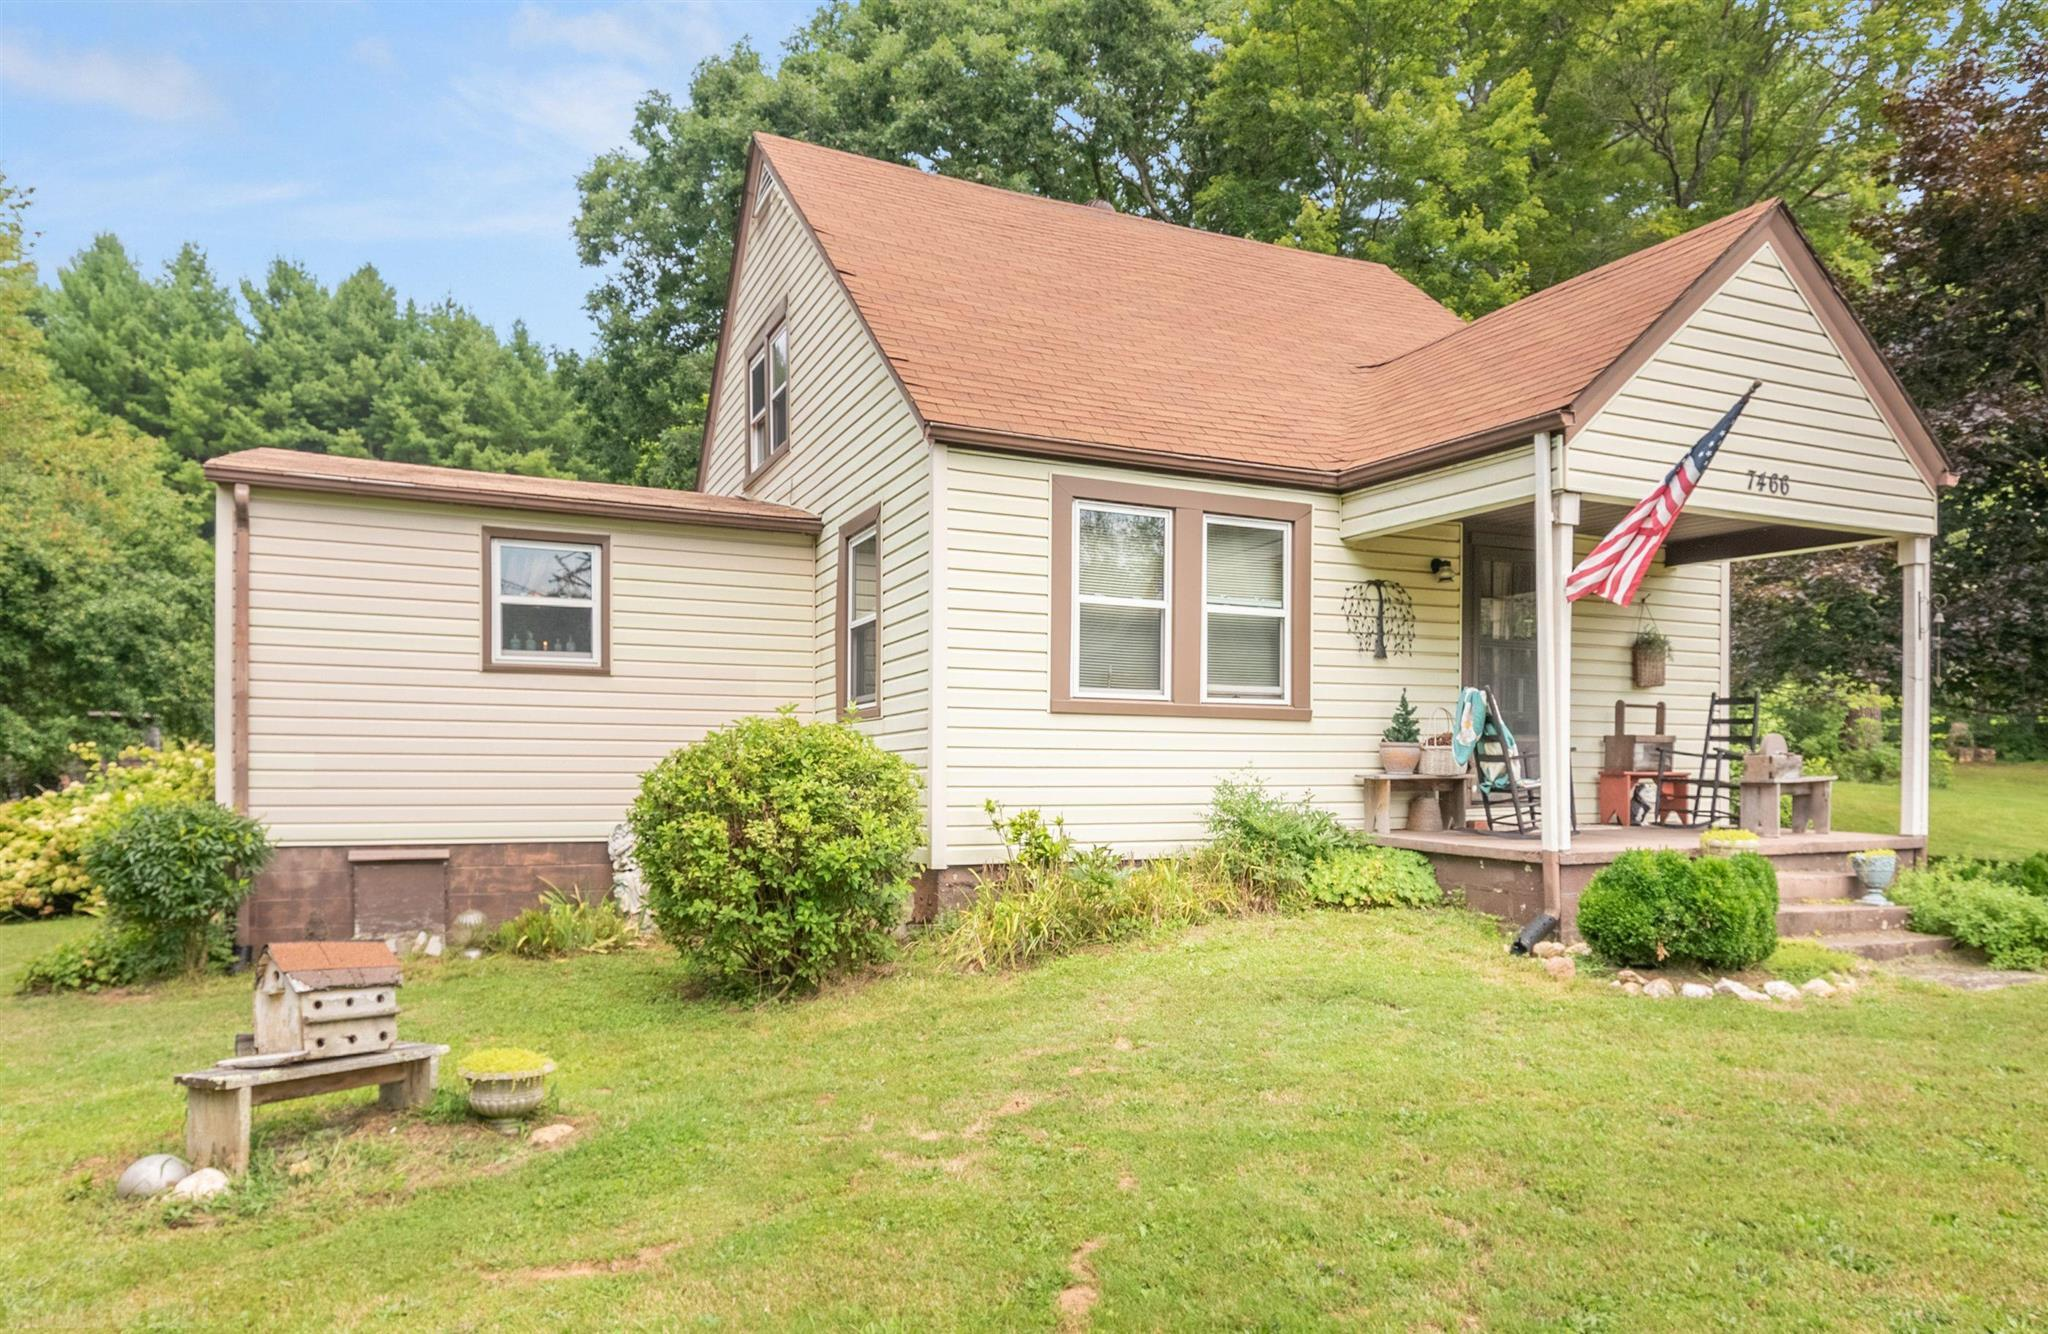 Charming cottage style home with 5+ acres. Property features creek, spring and is minutes away from town of Floyd. Property used to be a herb garden business, bring your green thumb and create the garden of your dreams. Come see all the charm this property has to offer with your own eyes!